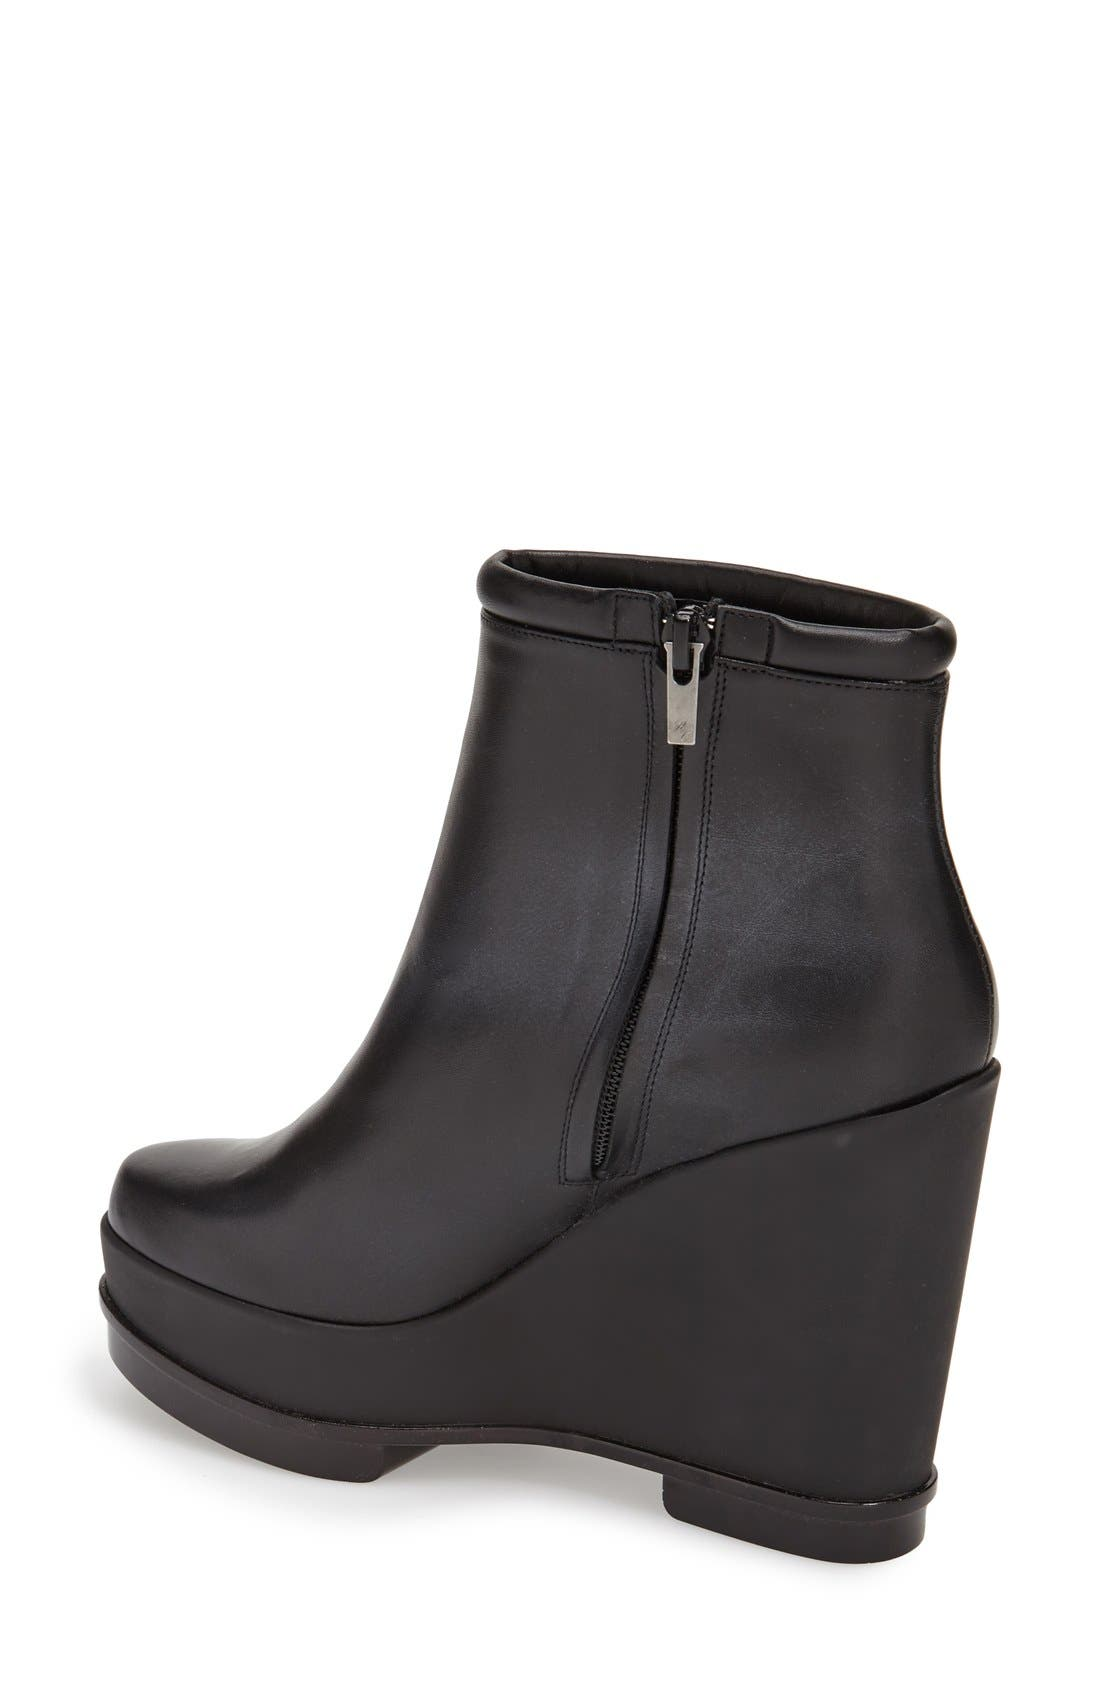 Alternate Image 2  - Robert Clergerie 'Sarlaj' Wedge Bootie (Women)